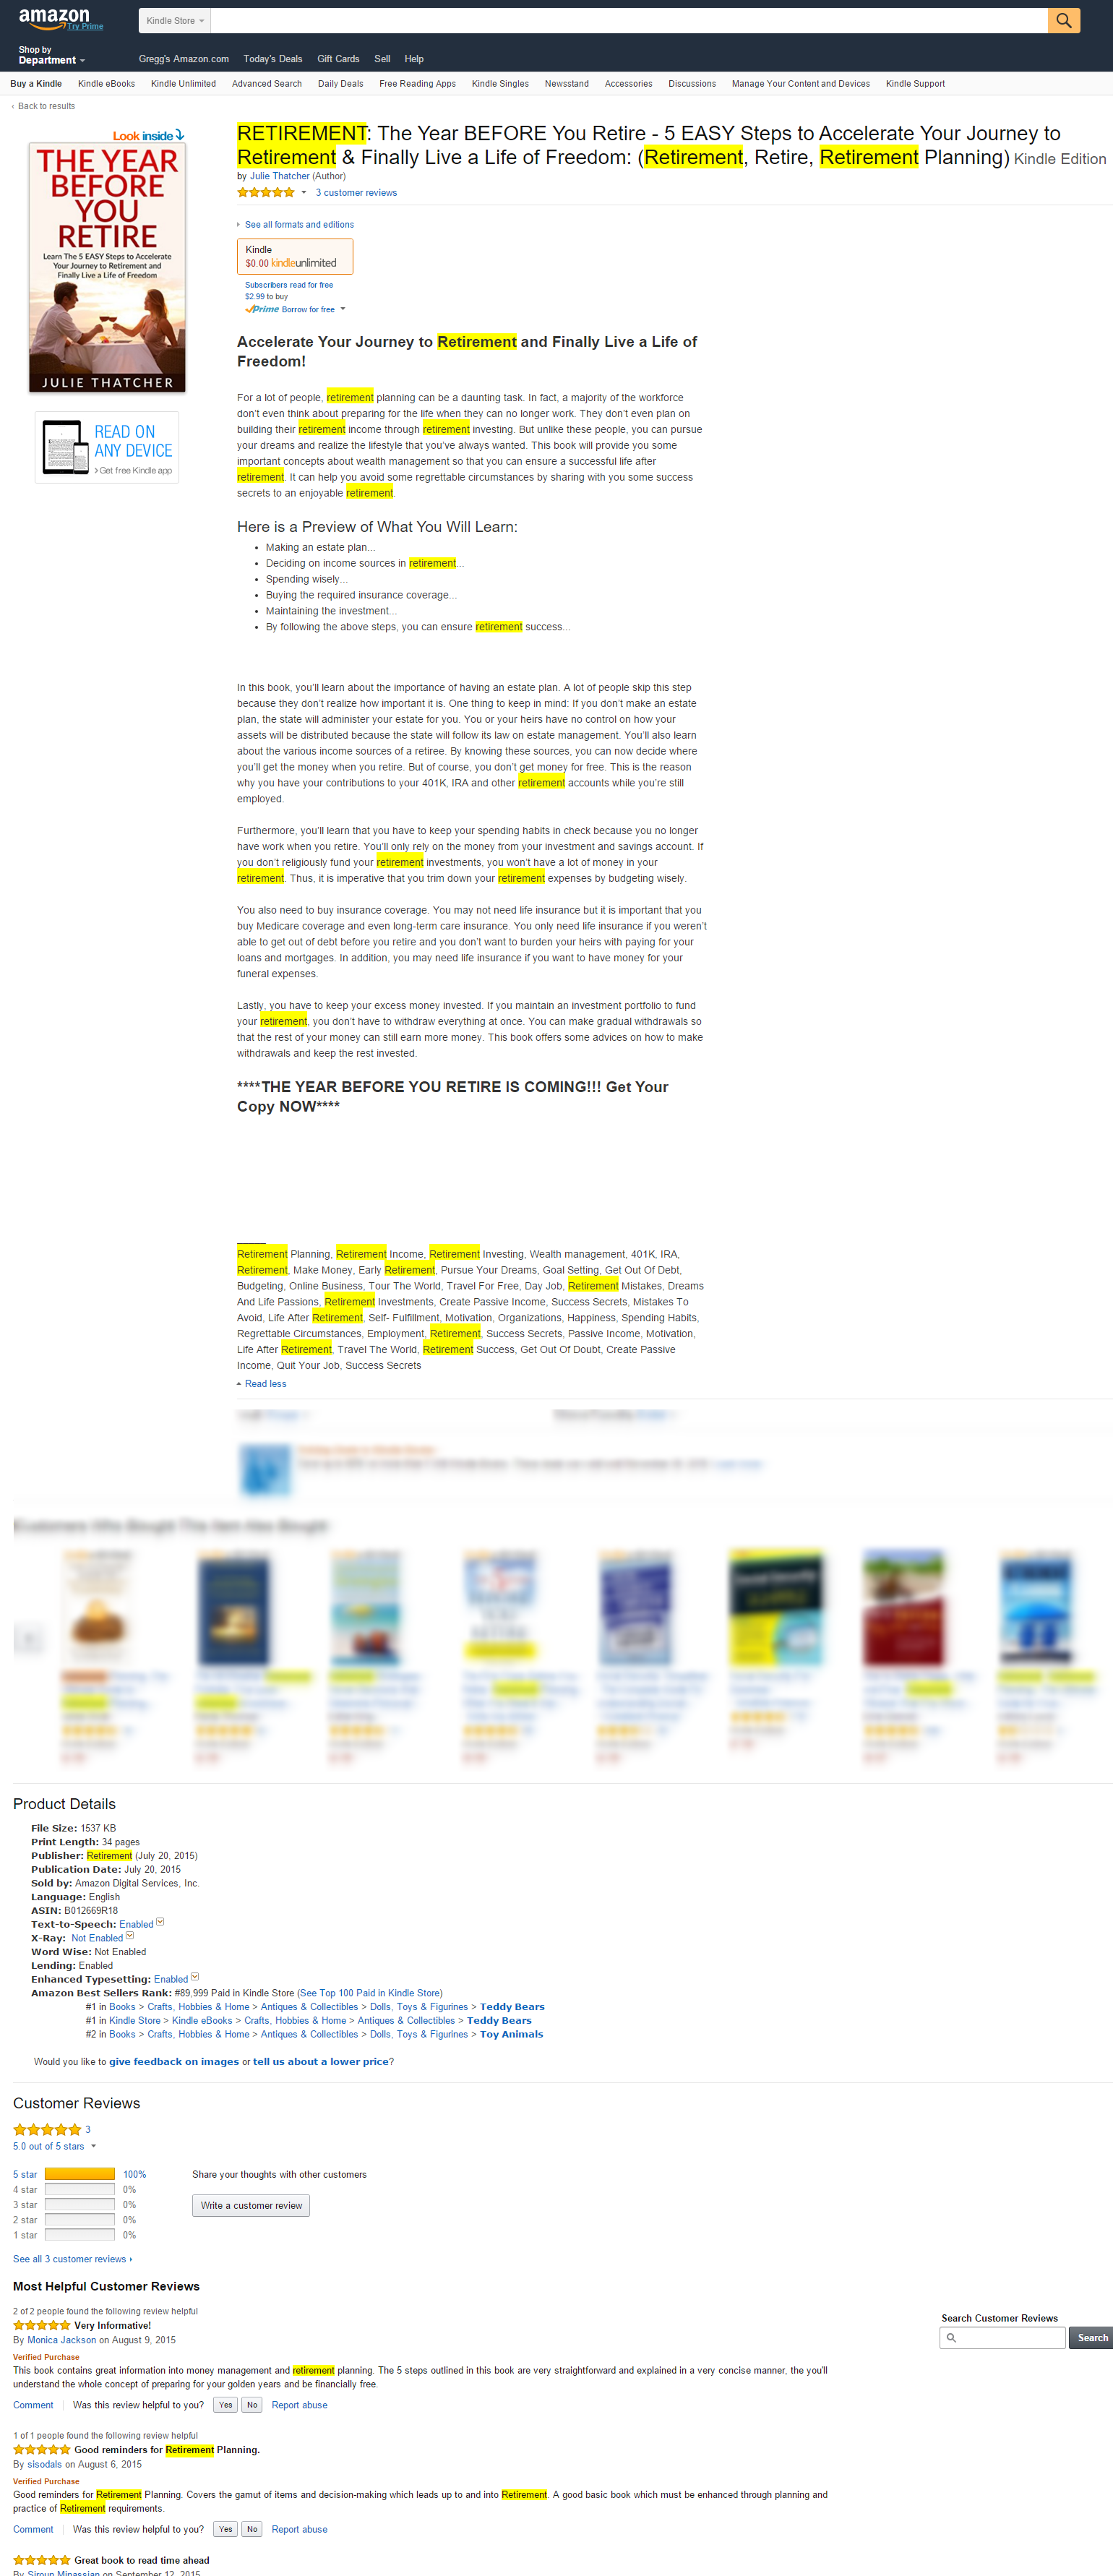 02.1 - Amazon Kindle SEO - scam example - keyword stuffing